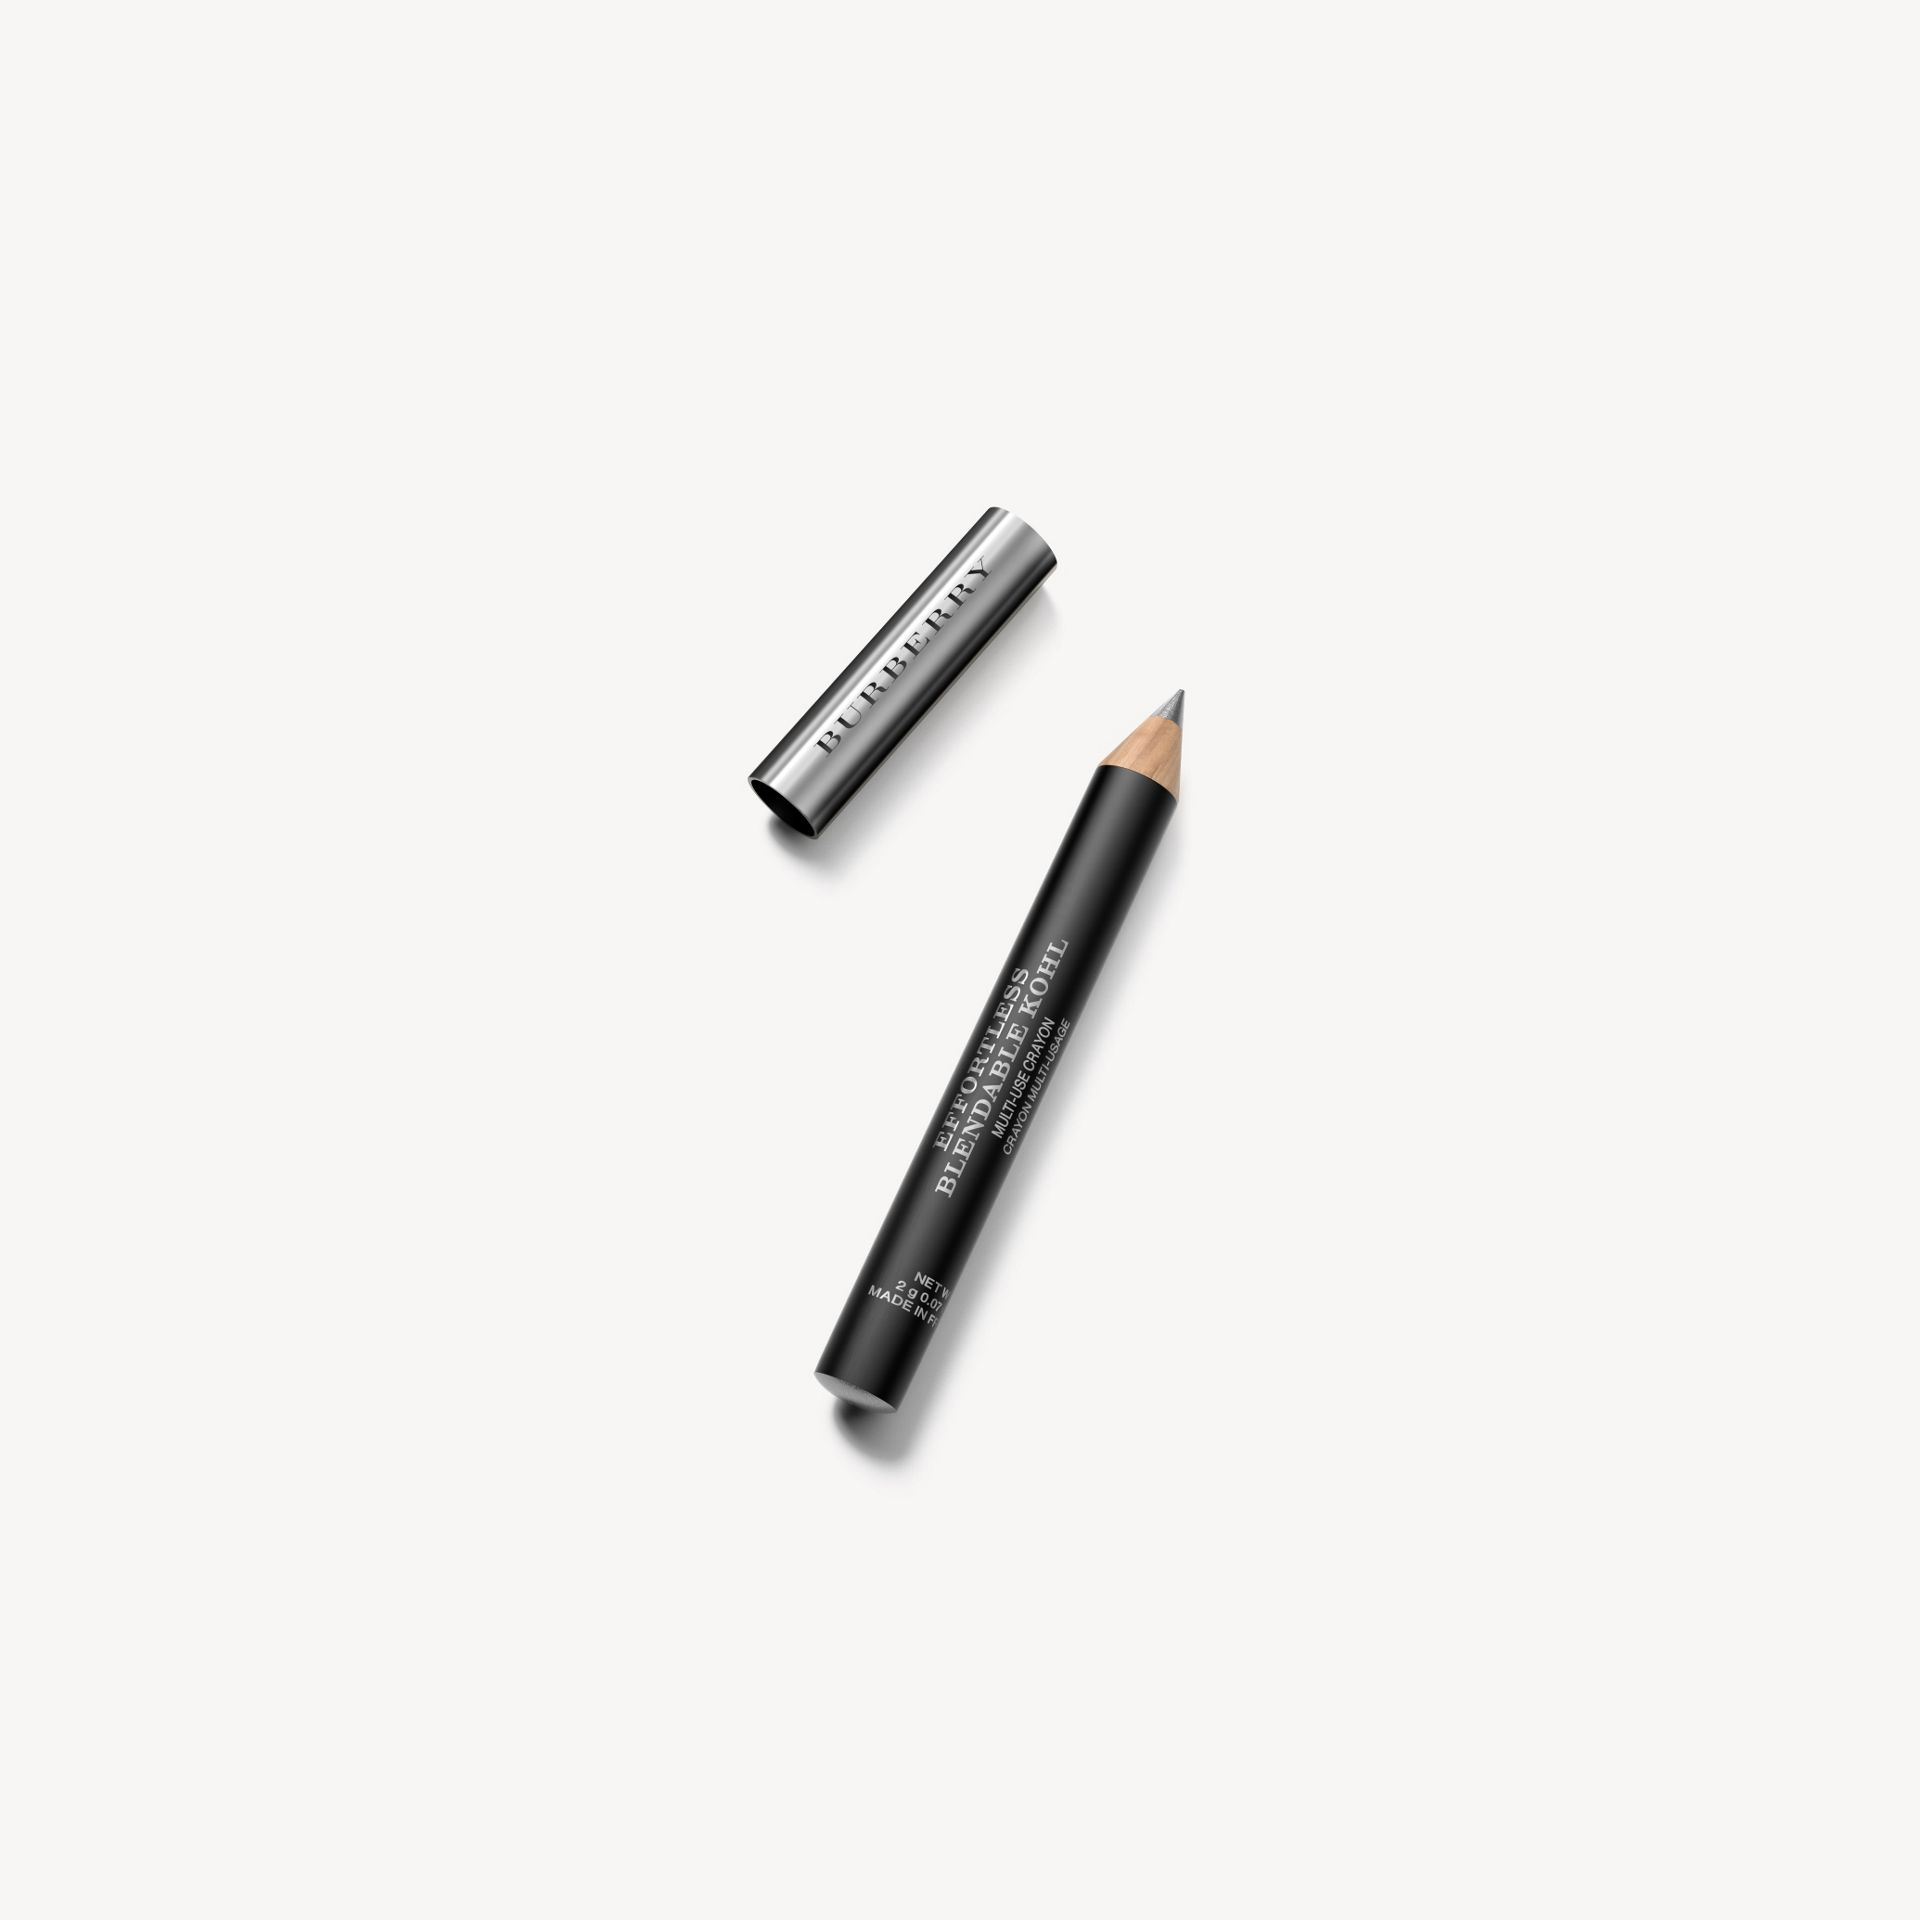 Effortless Blendable Kohl – Pearl Grey No.04 - galeria de imagens 1